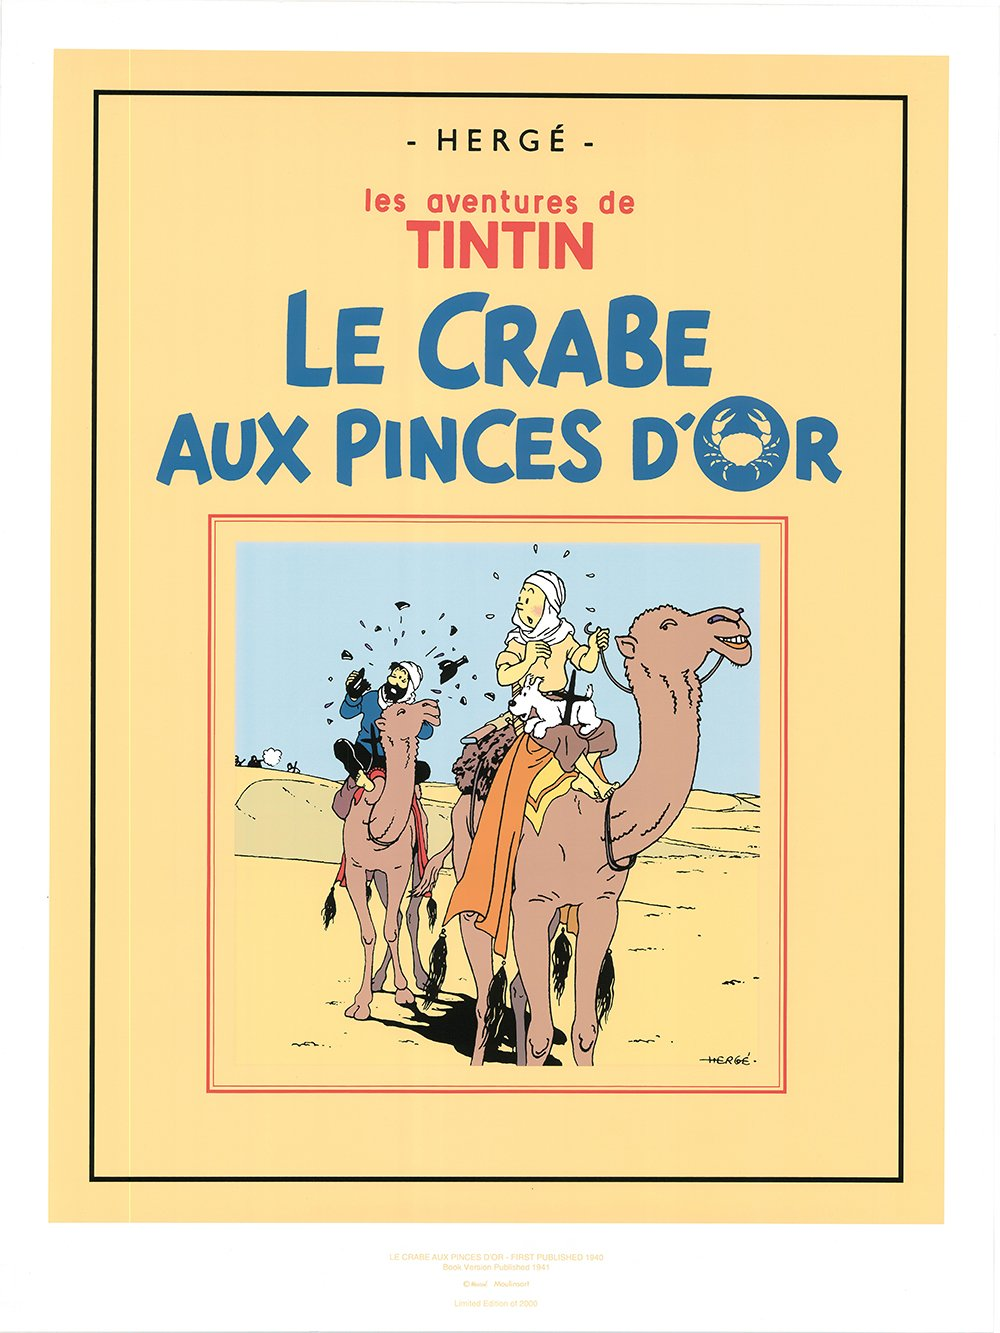 Le Crabe Aux Pinces D'or Limited Edition Book Cover Poster